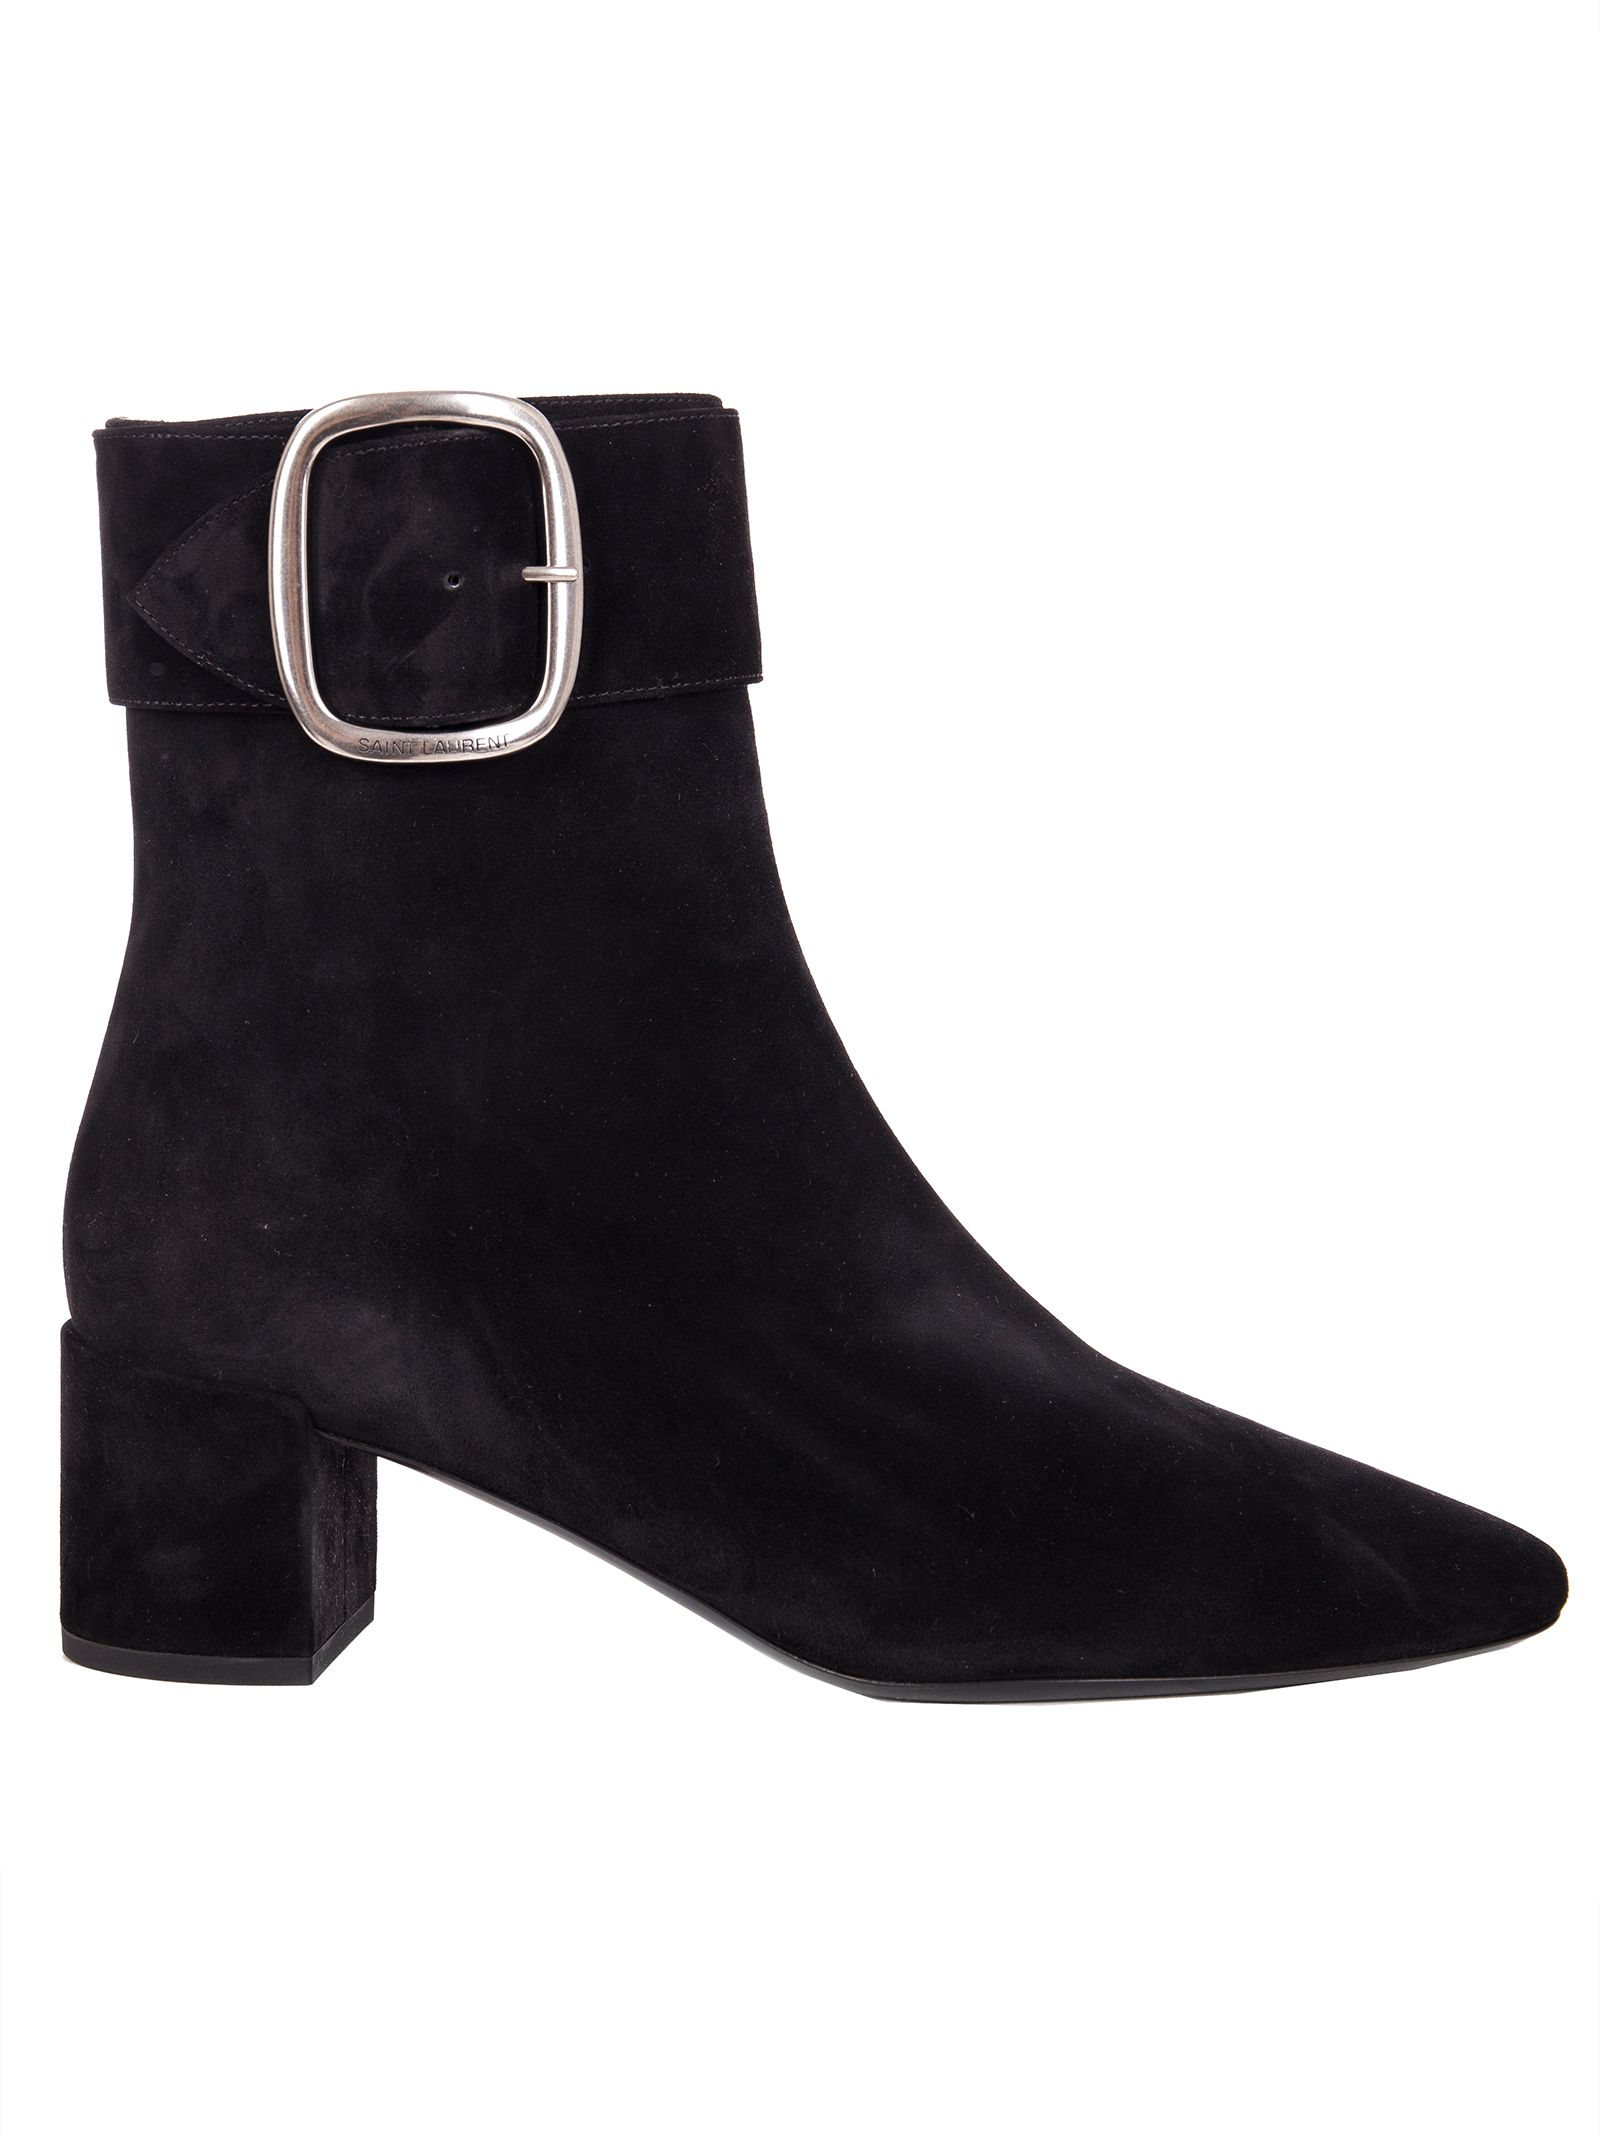 Saint Laurent Joplin Buckle Bootie